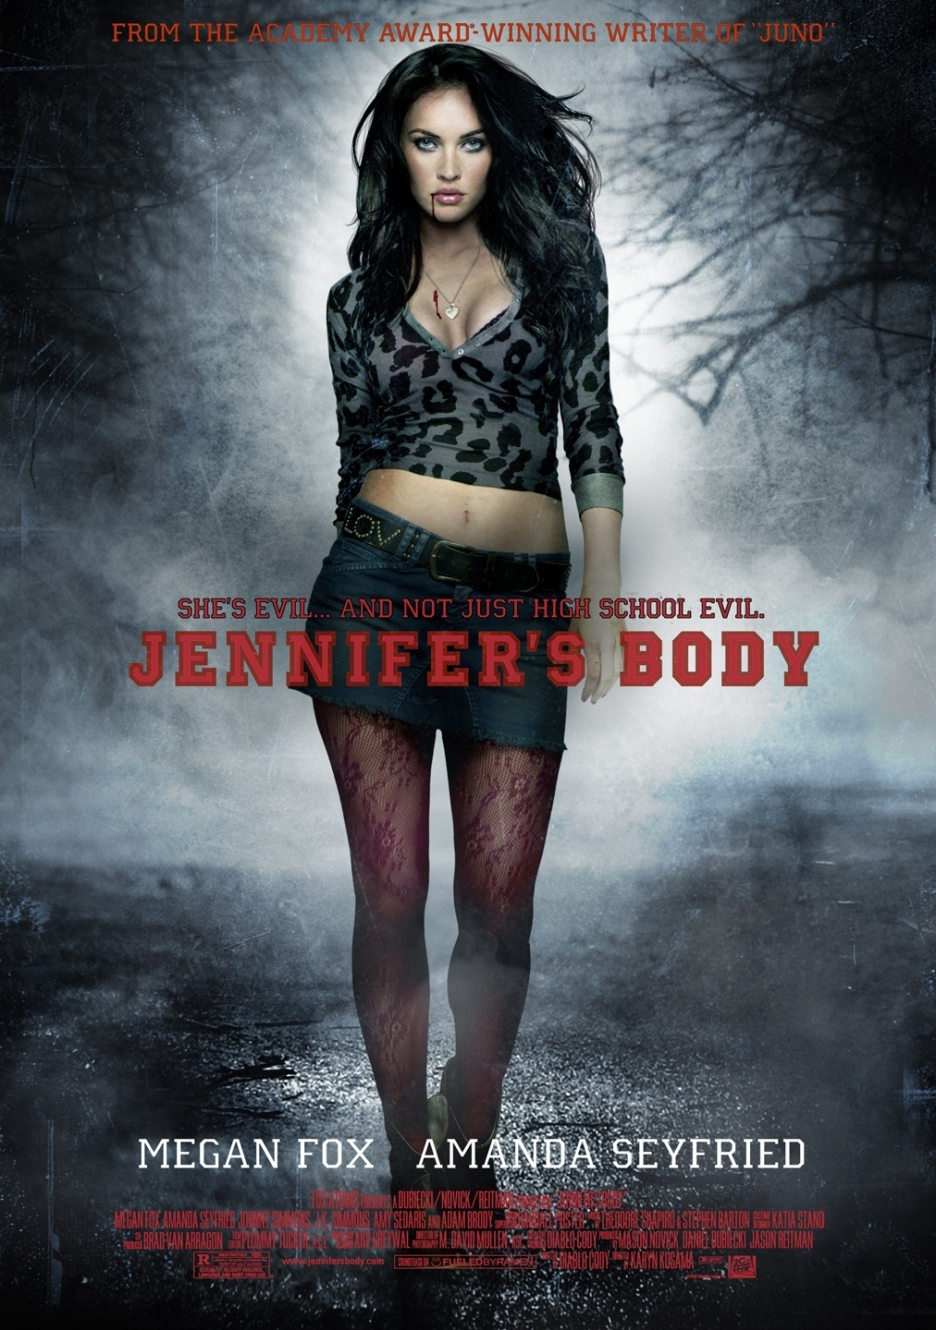 936full-jennifer's-body-poster.jpg